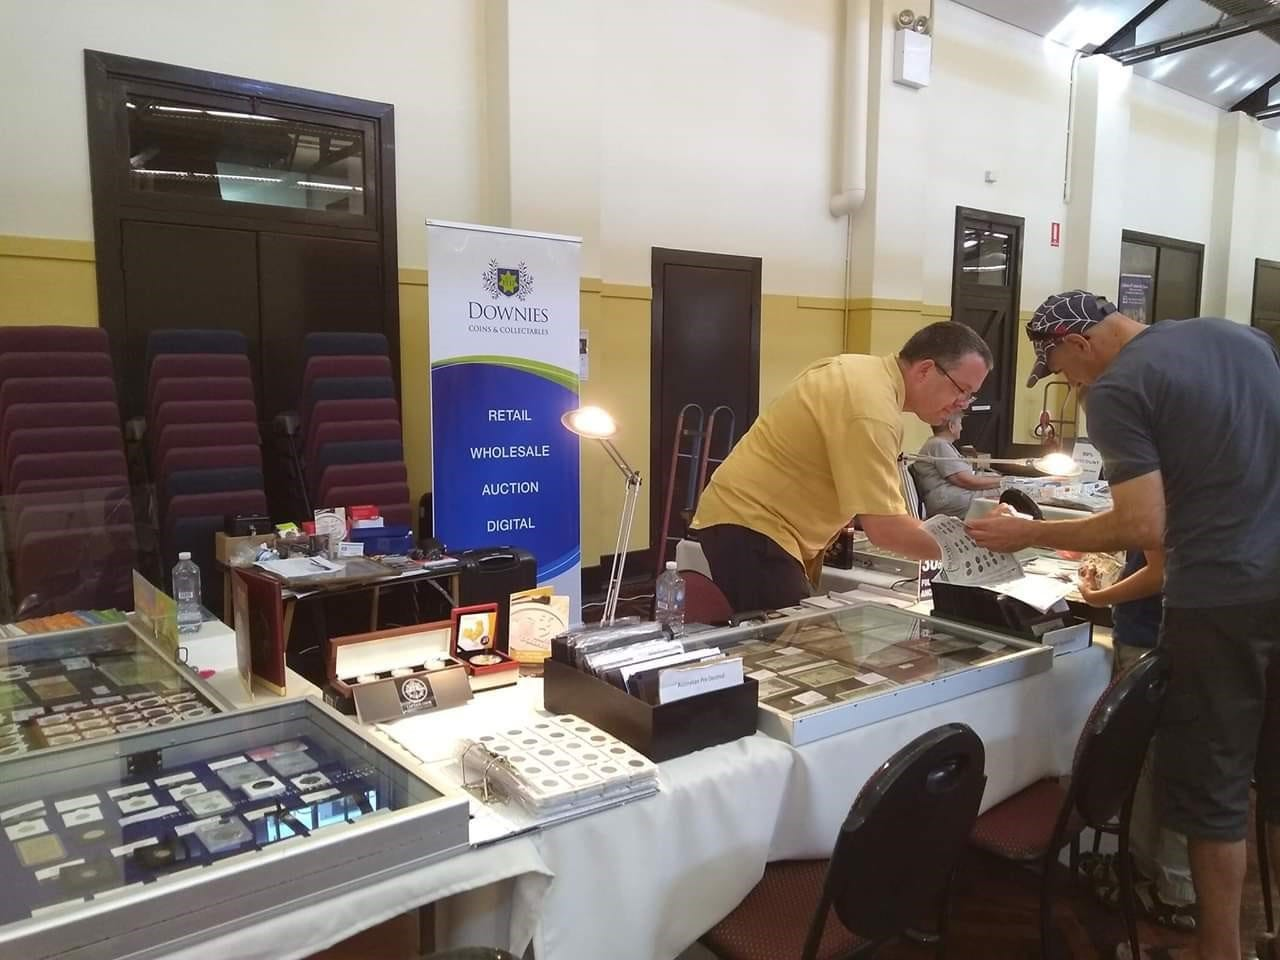 At the Numismatic Association of South Australia's Coin and Banknote Expo, Downies Numismatist Steve Kirby helps locate an ancient coin for a father and son who are collecting coins together